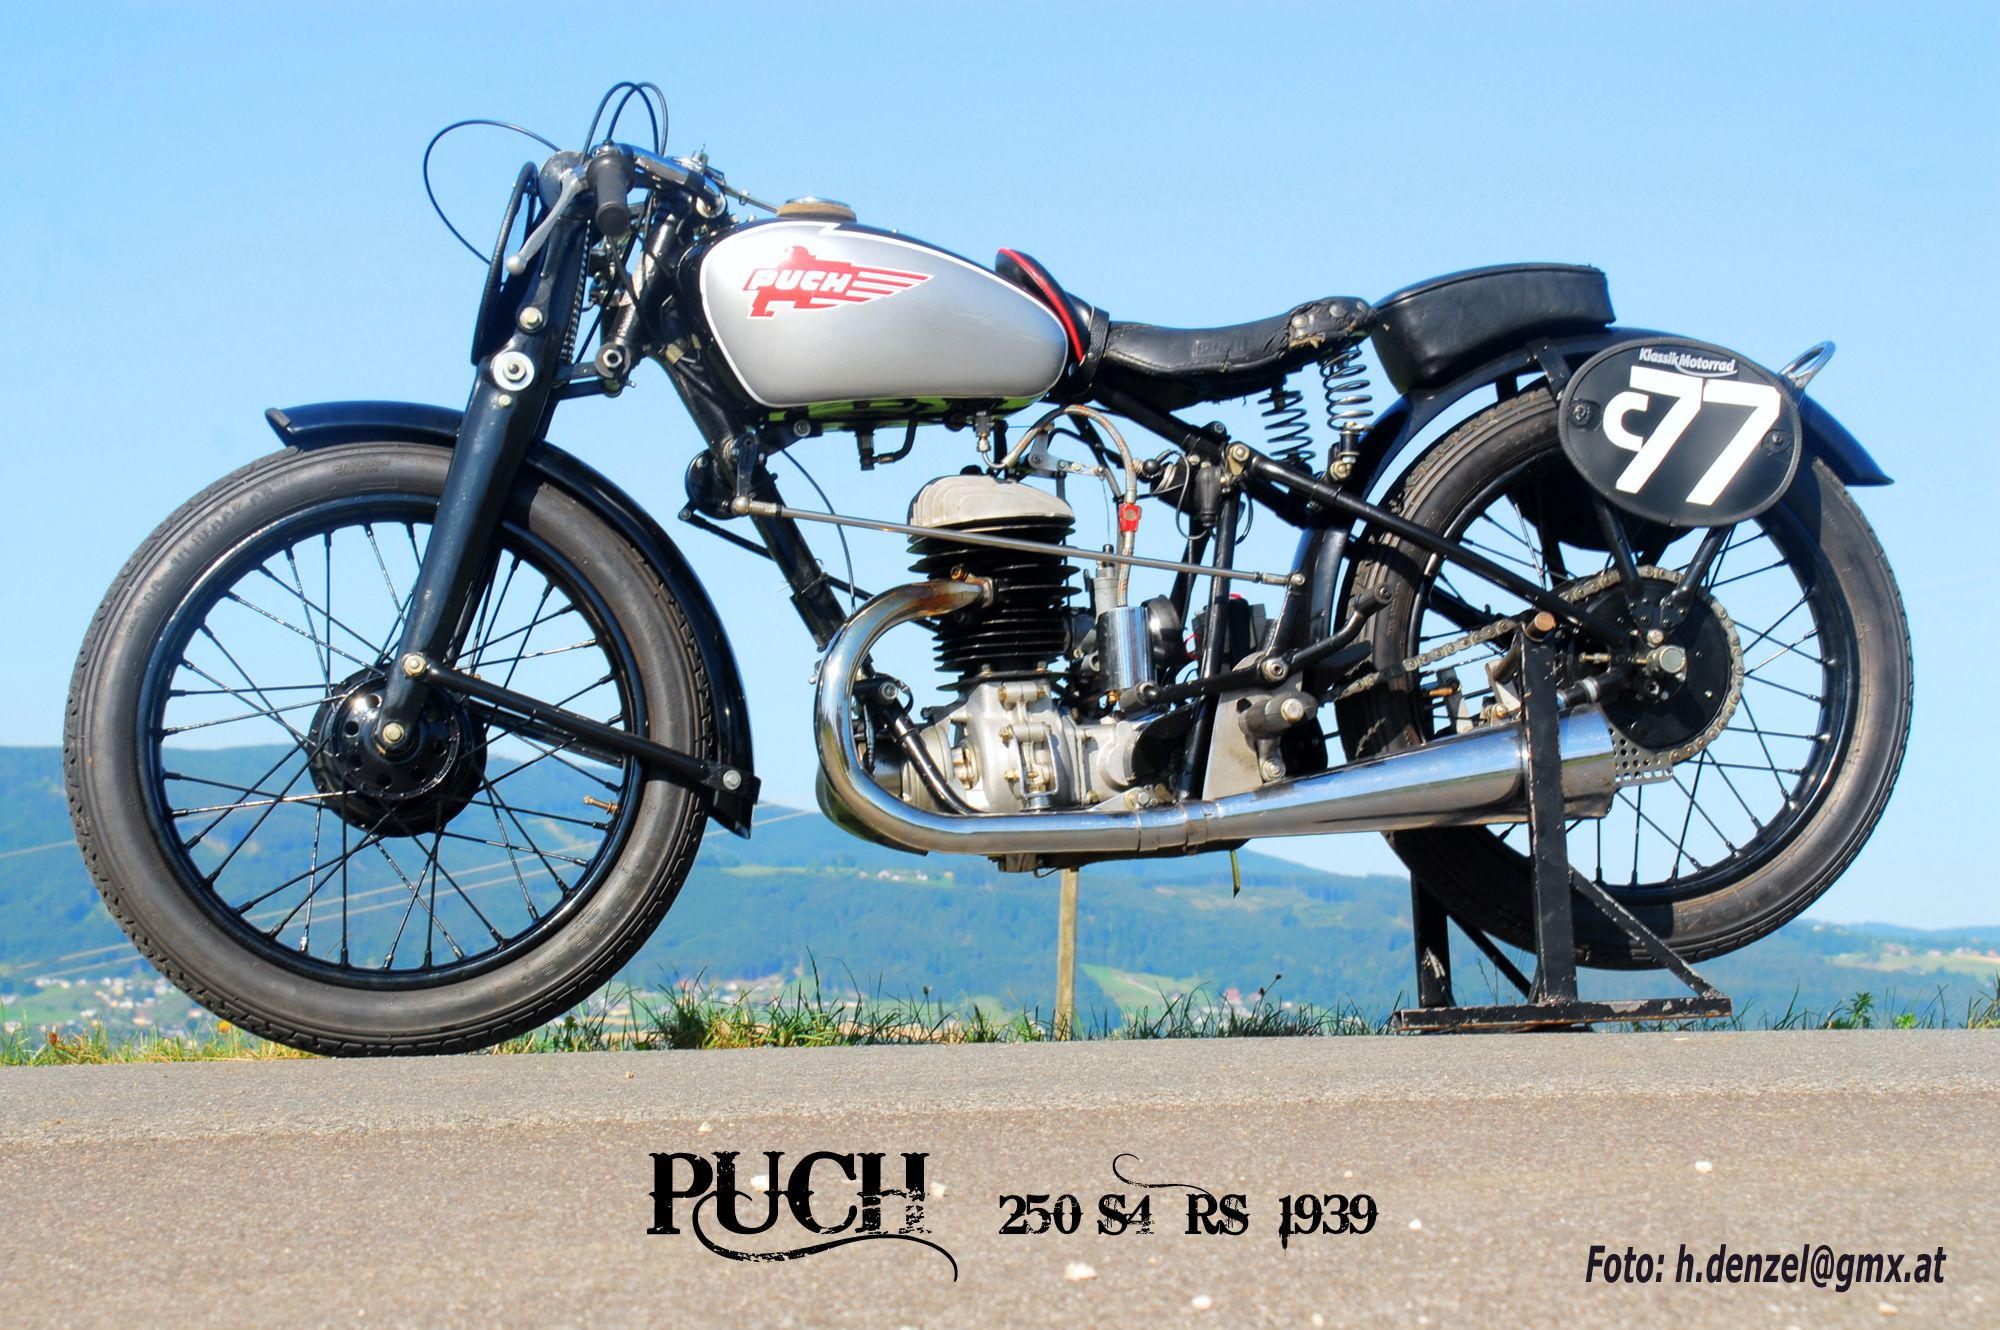 Puch 250 S4 RS  1939